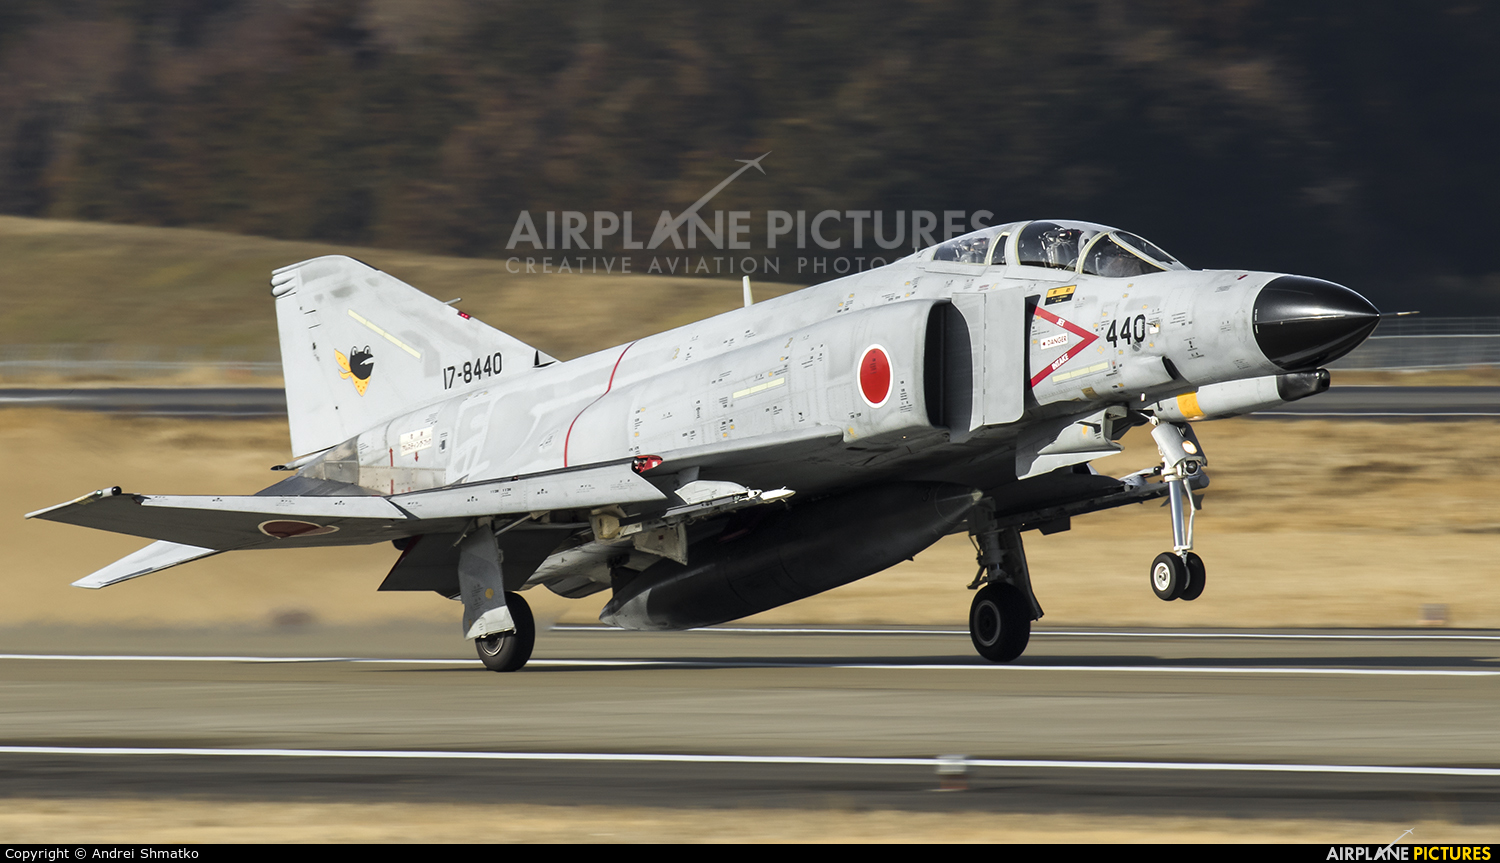 Japan - Air Self Defence Force 17-8440 aircraft at Ibaraki - Hyakuri AB